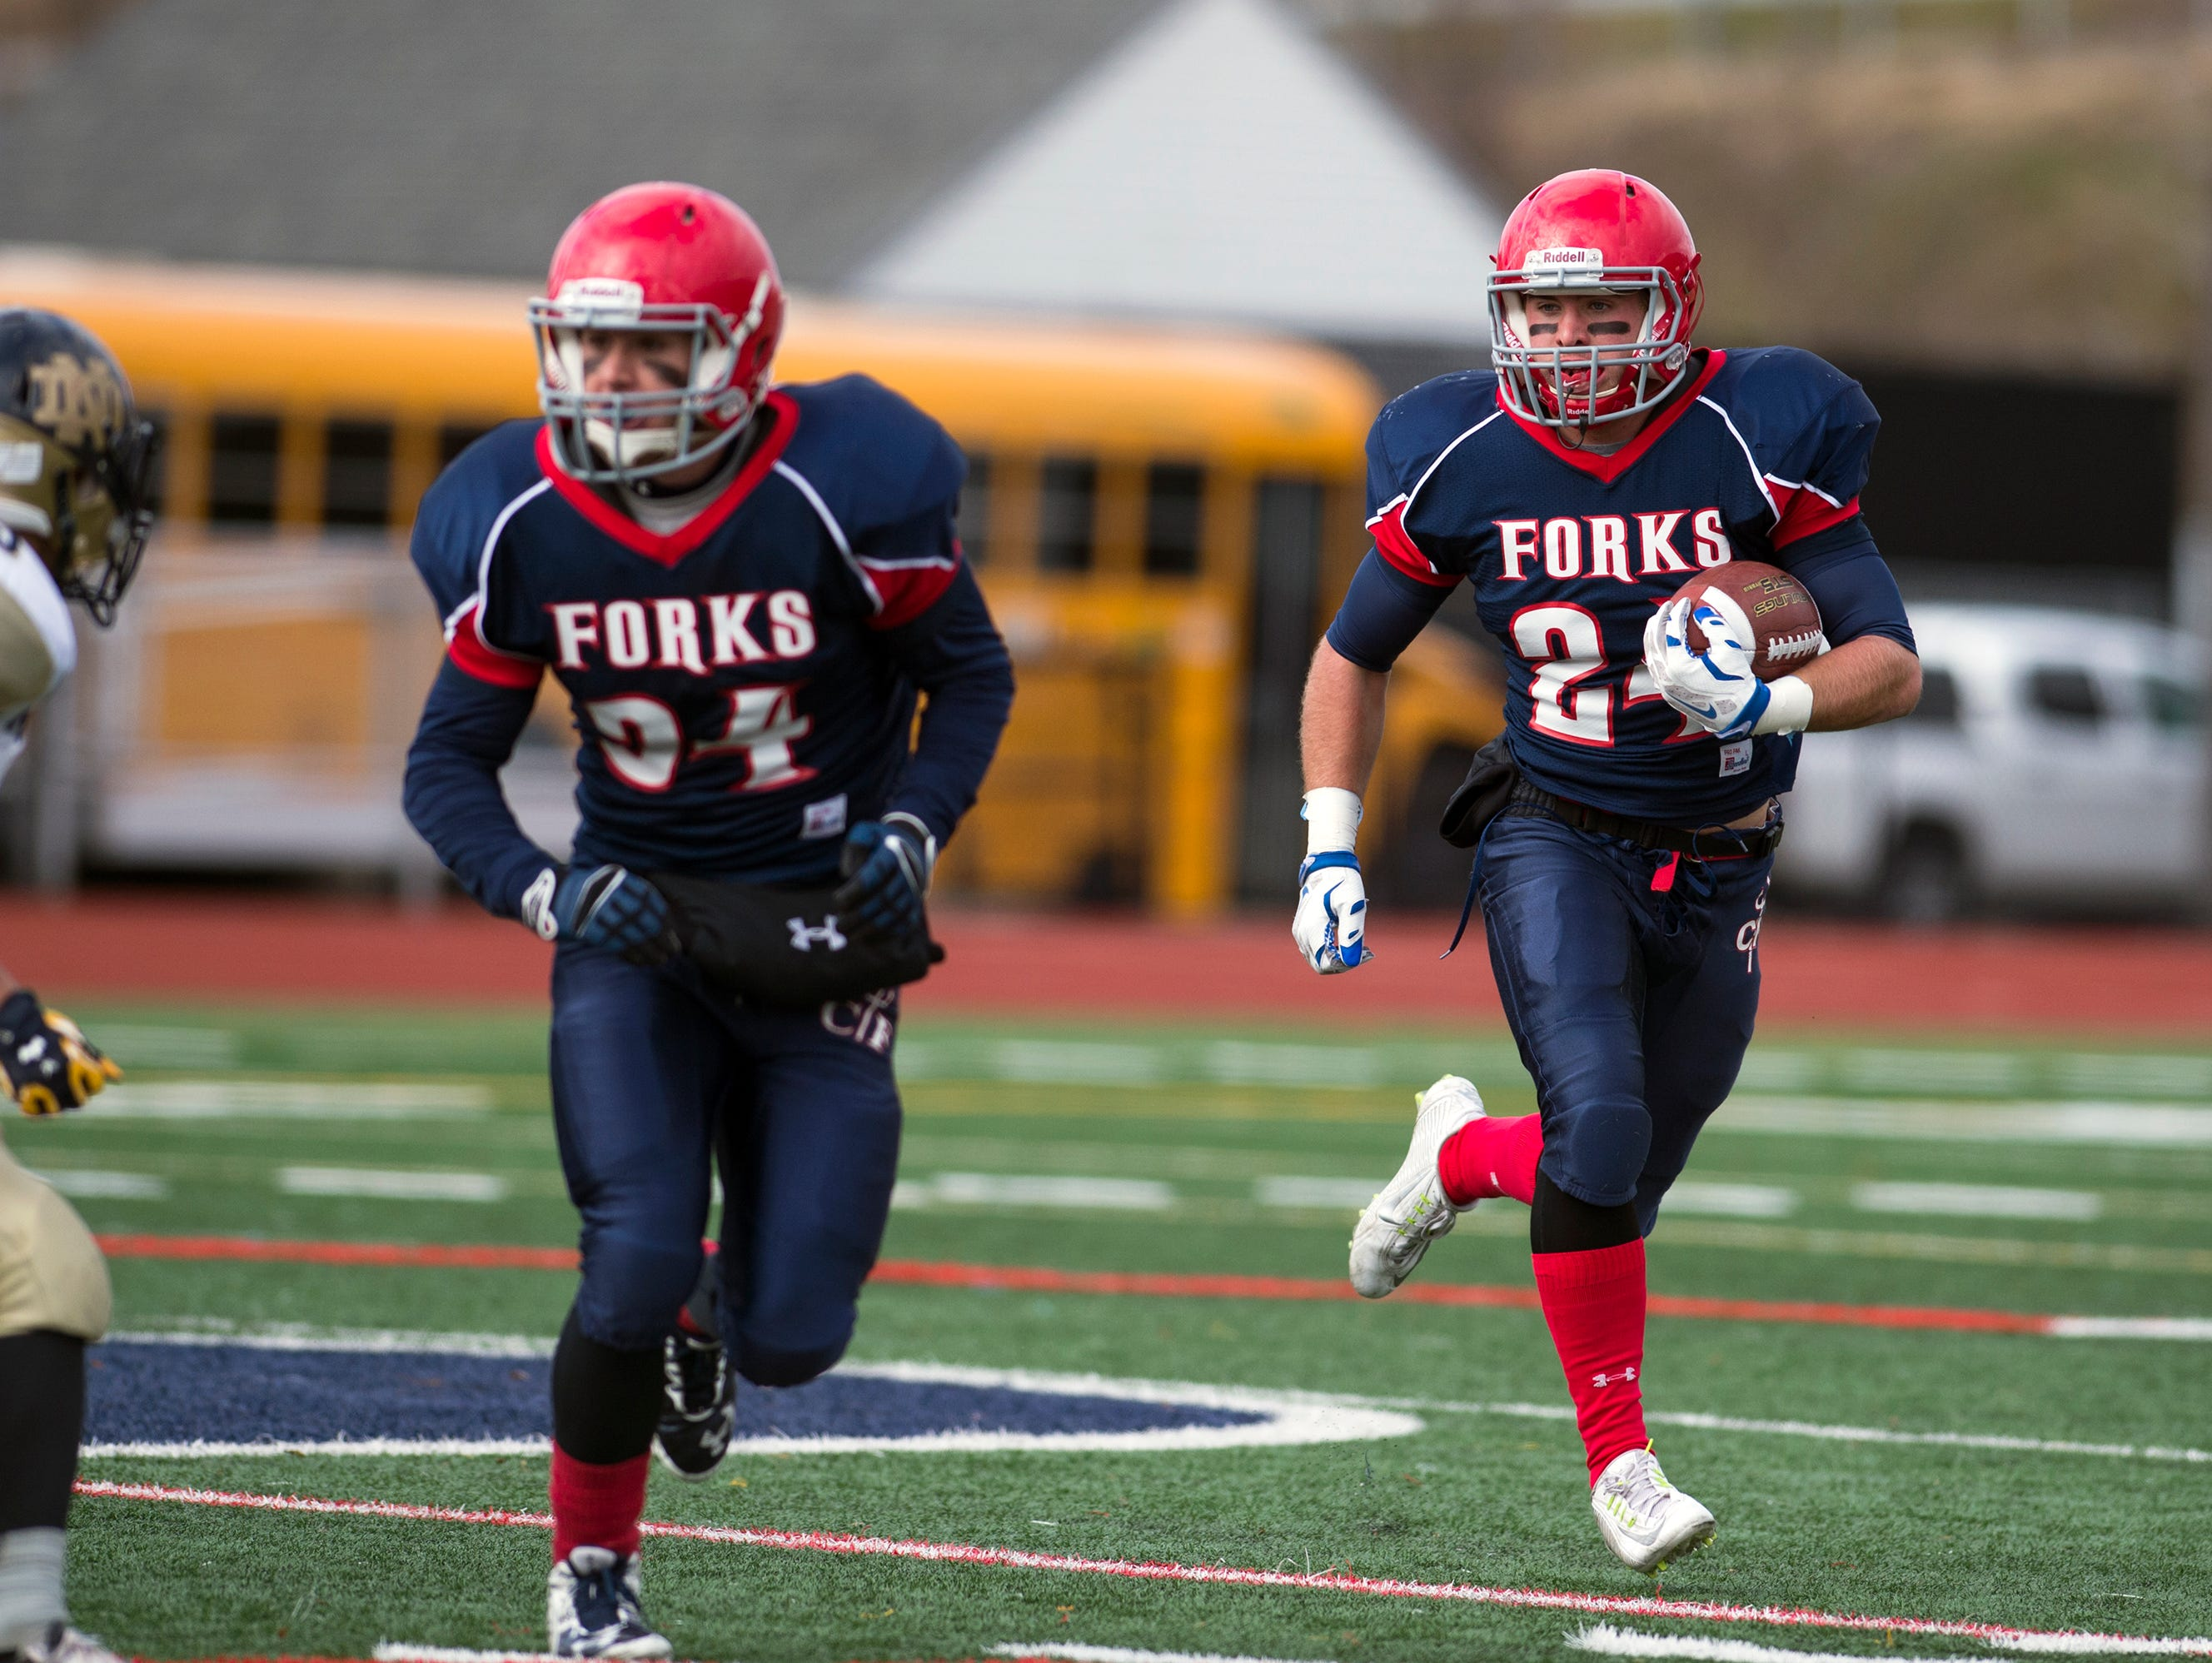 Chenango Forks running back Dylan Studer rushes during the Blue Devil's 35-8 win over Utica Notre Dame to advance to the Class C state semifinals on Saturday, Nov. 14, 2015 at Binghamton Alumni Stadium.